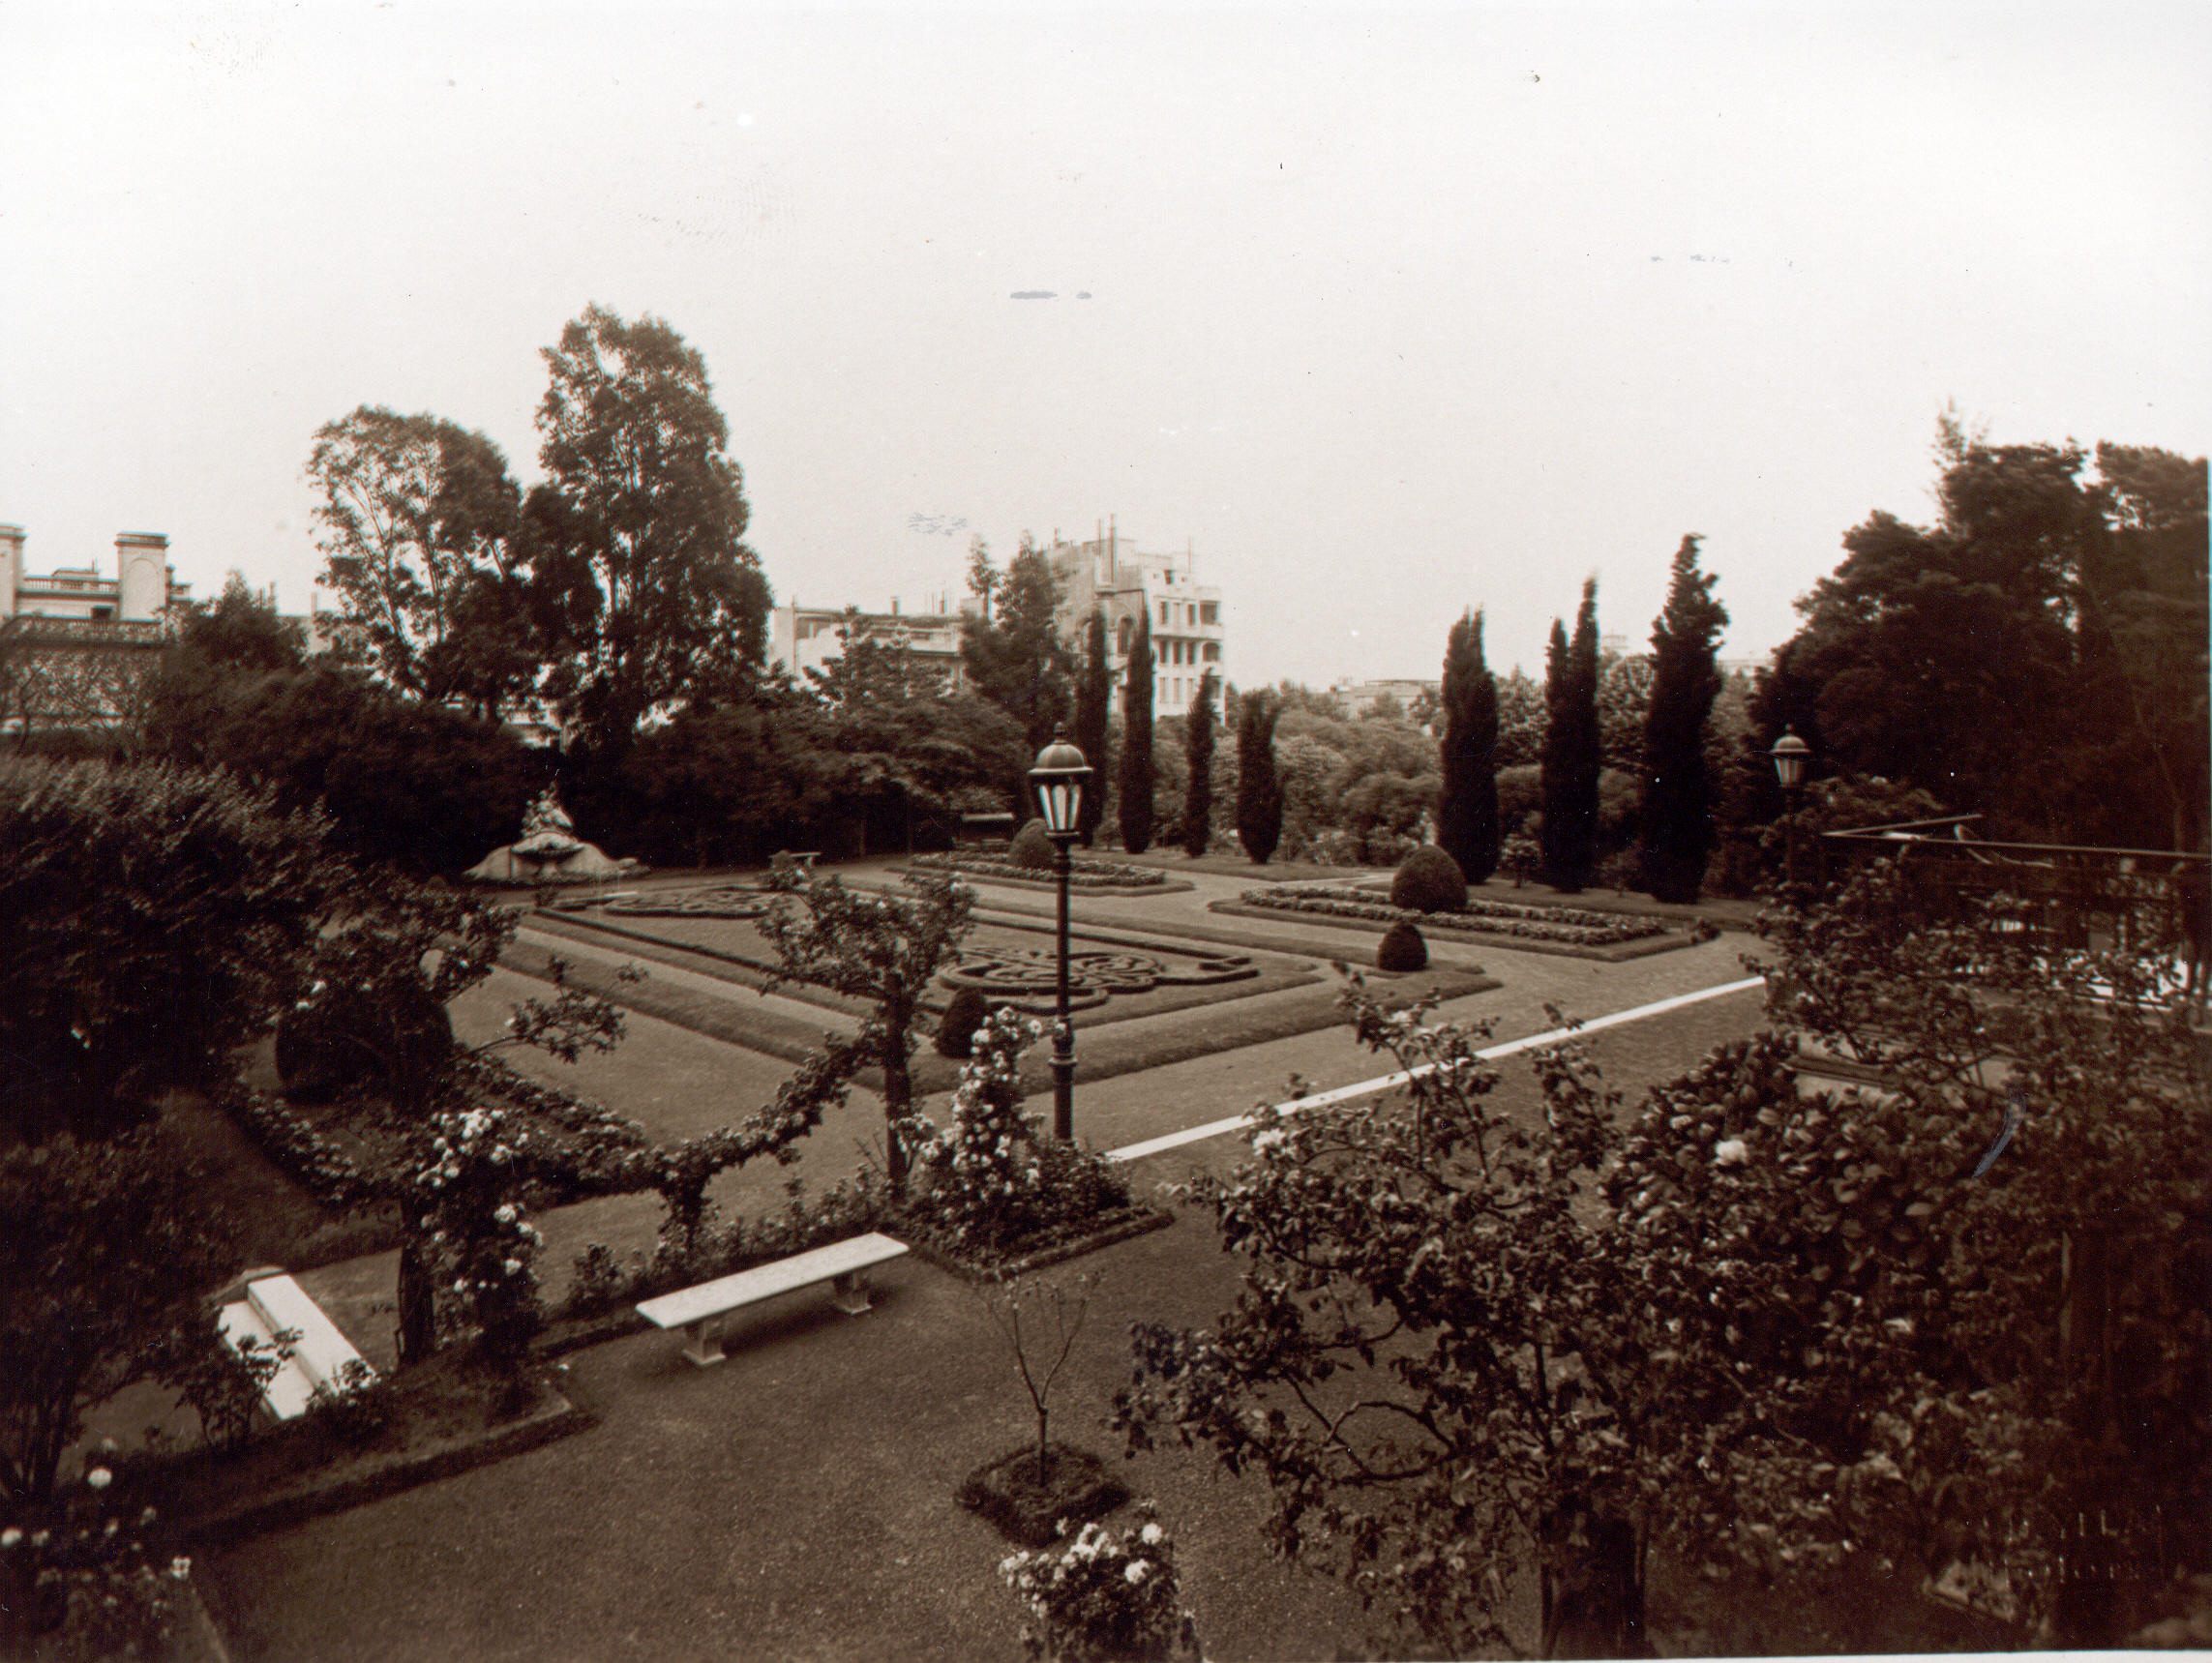 Bosch Palace, Paterre Garden, ca. 1930